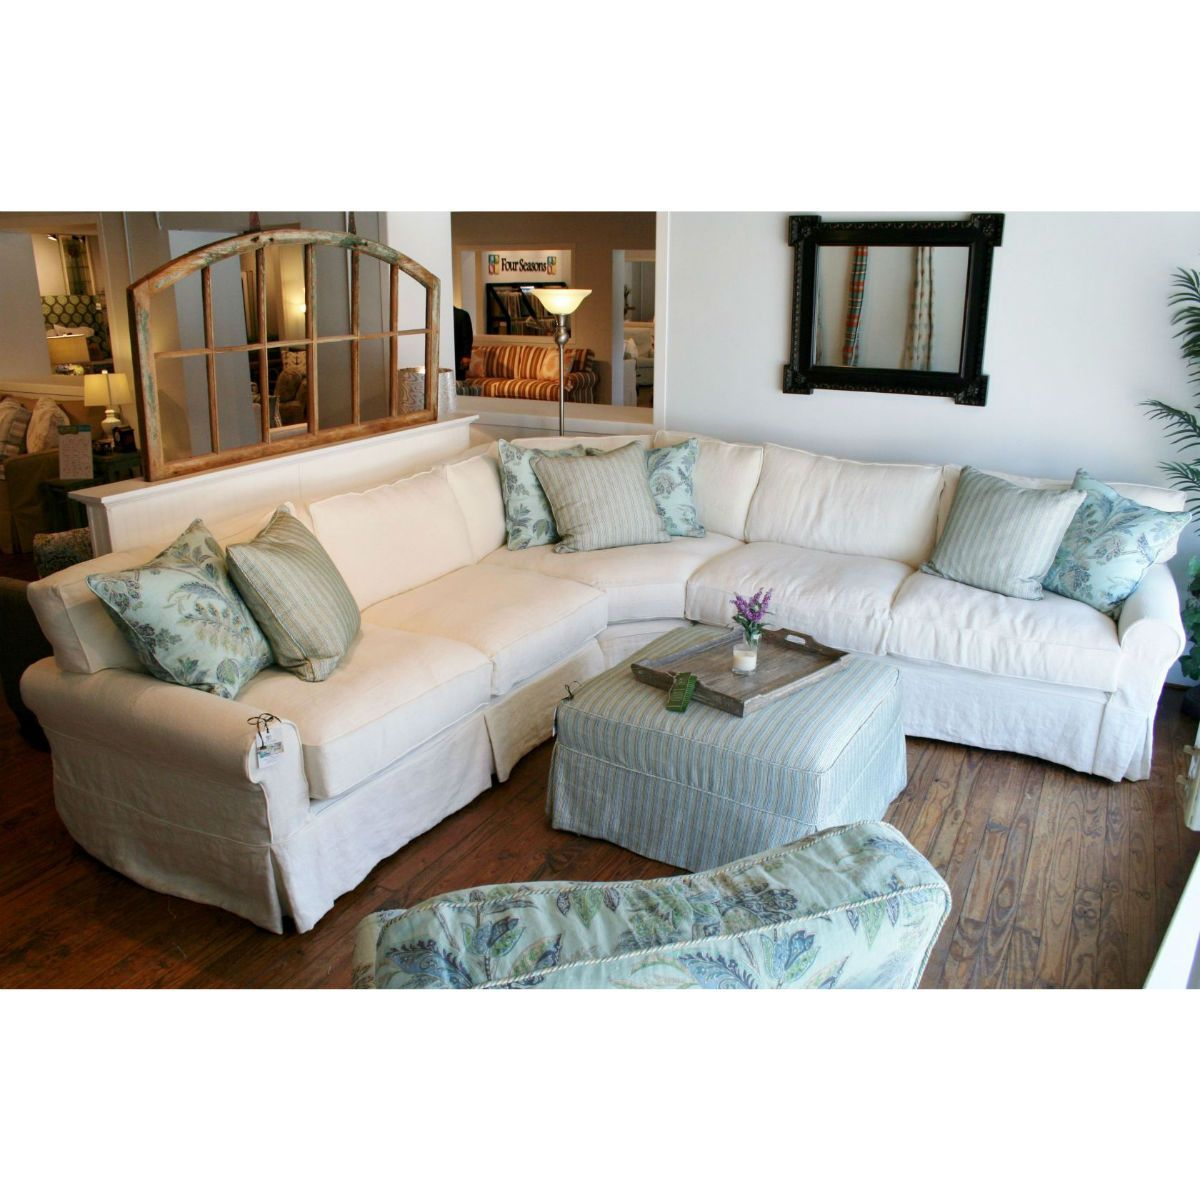 Slipcovered Sectional Sofa-Boothbay (Daniel) 108x108 | Coastal ...